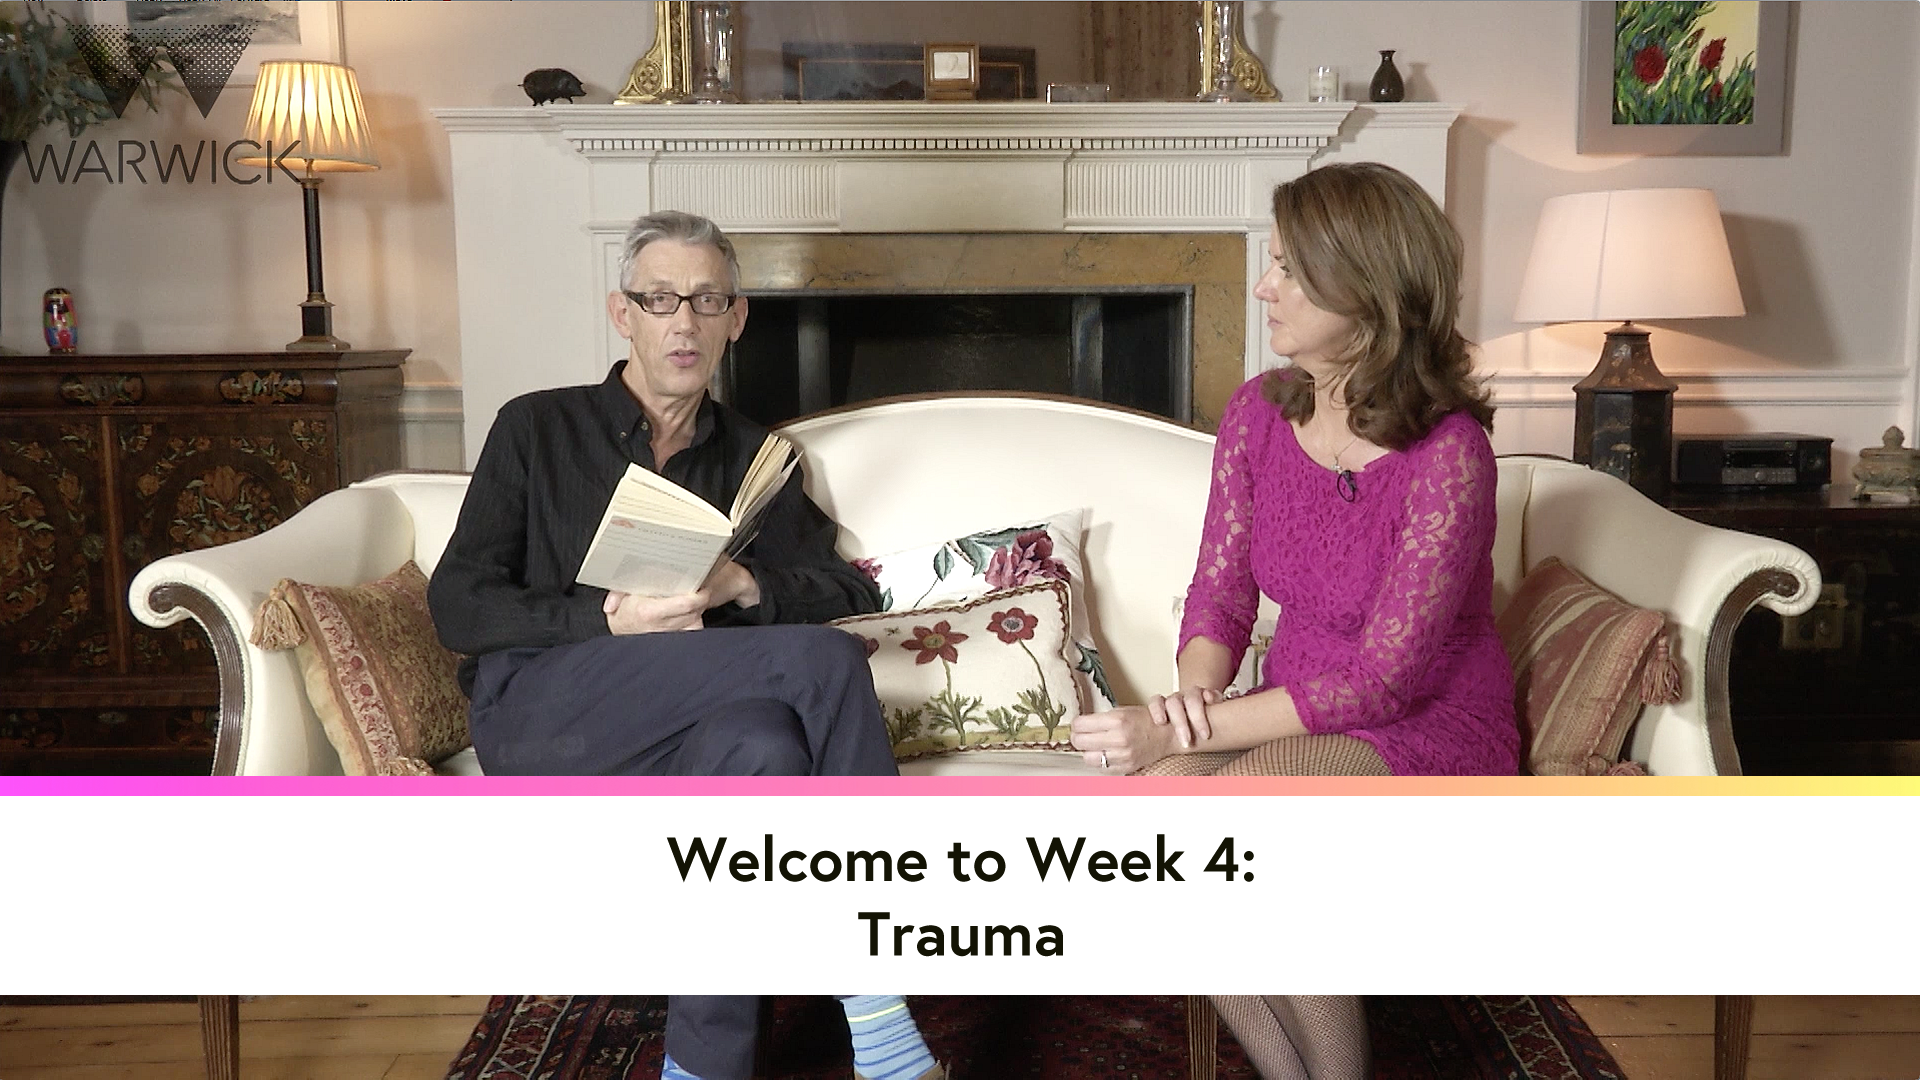 Welcome to Week 4: Trauma